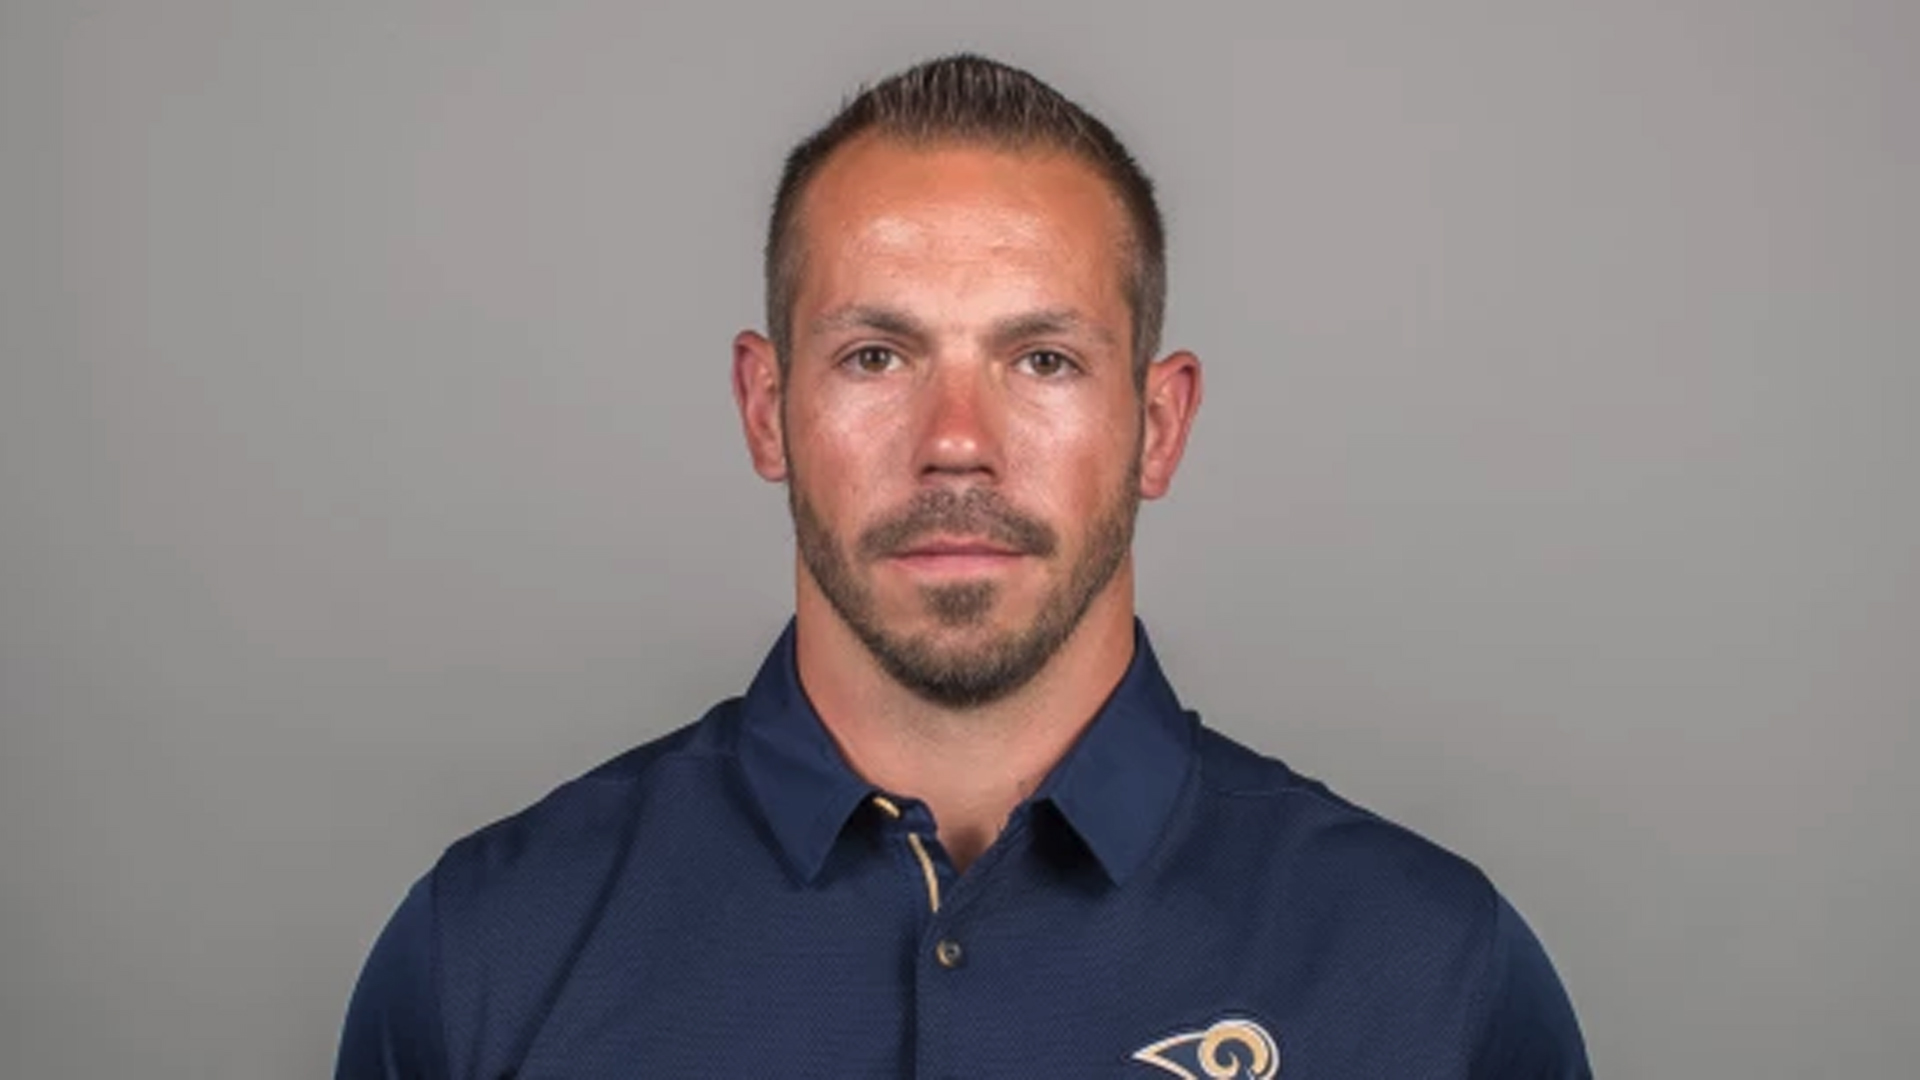 Rams training coach Ted Rath is seen in an undated photo from the team's website.